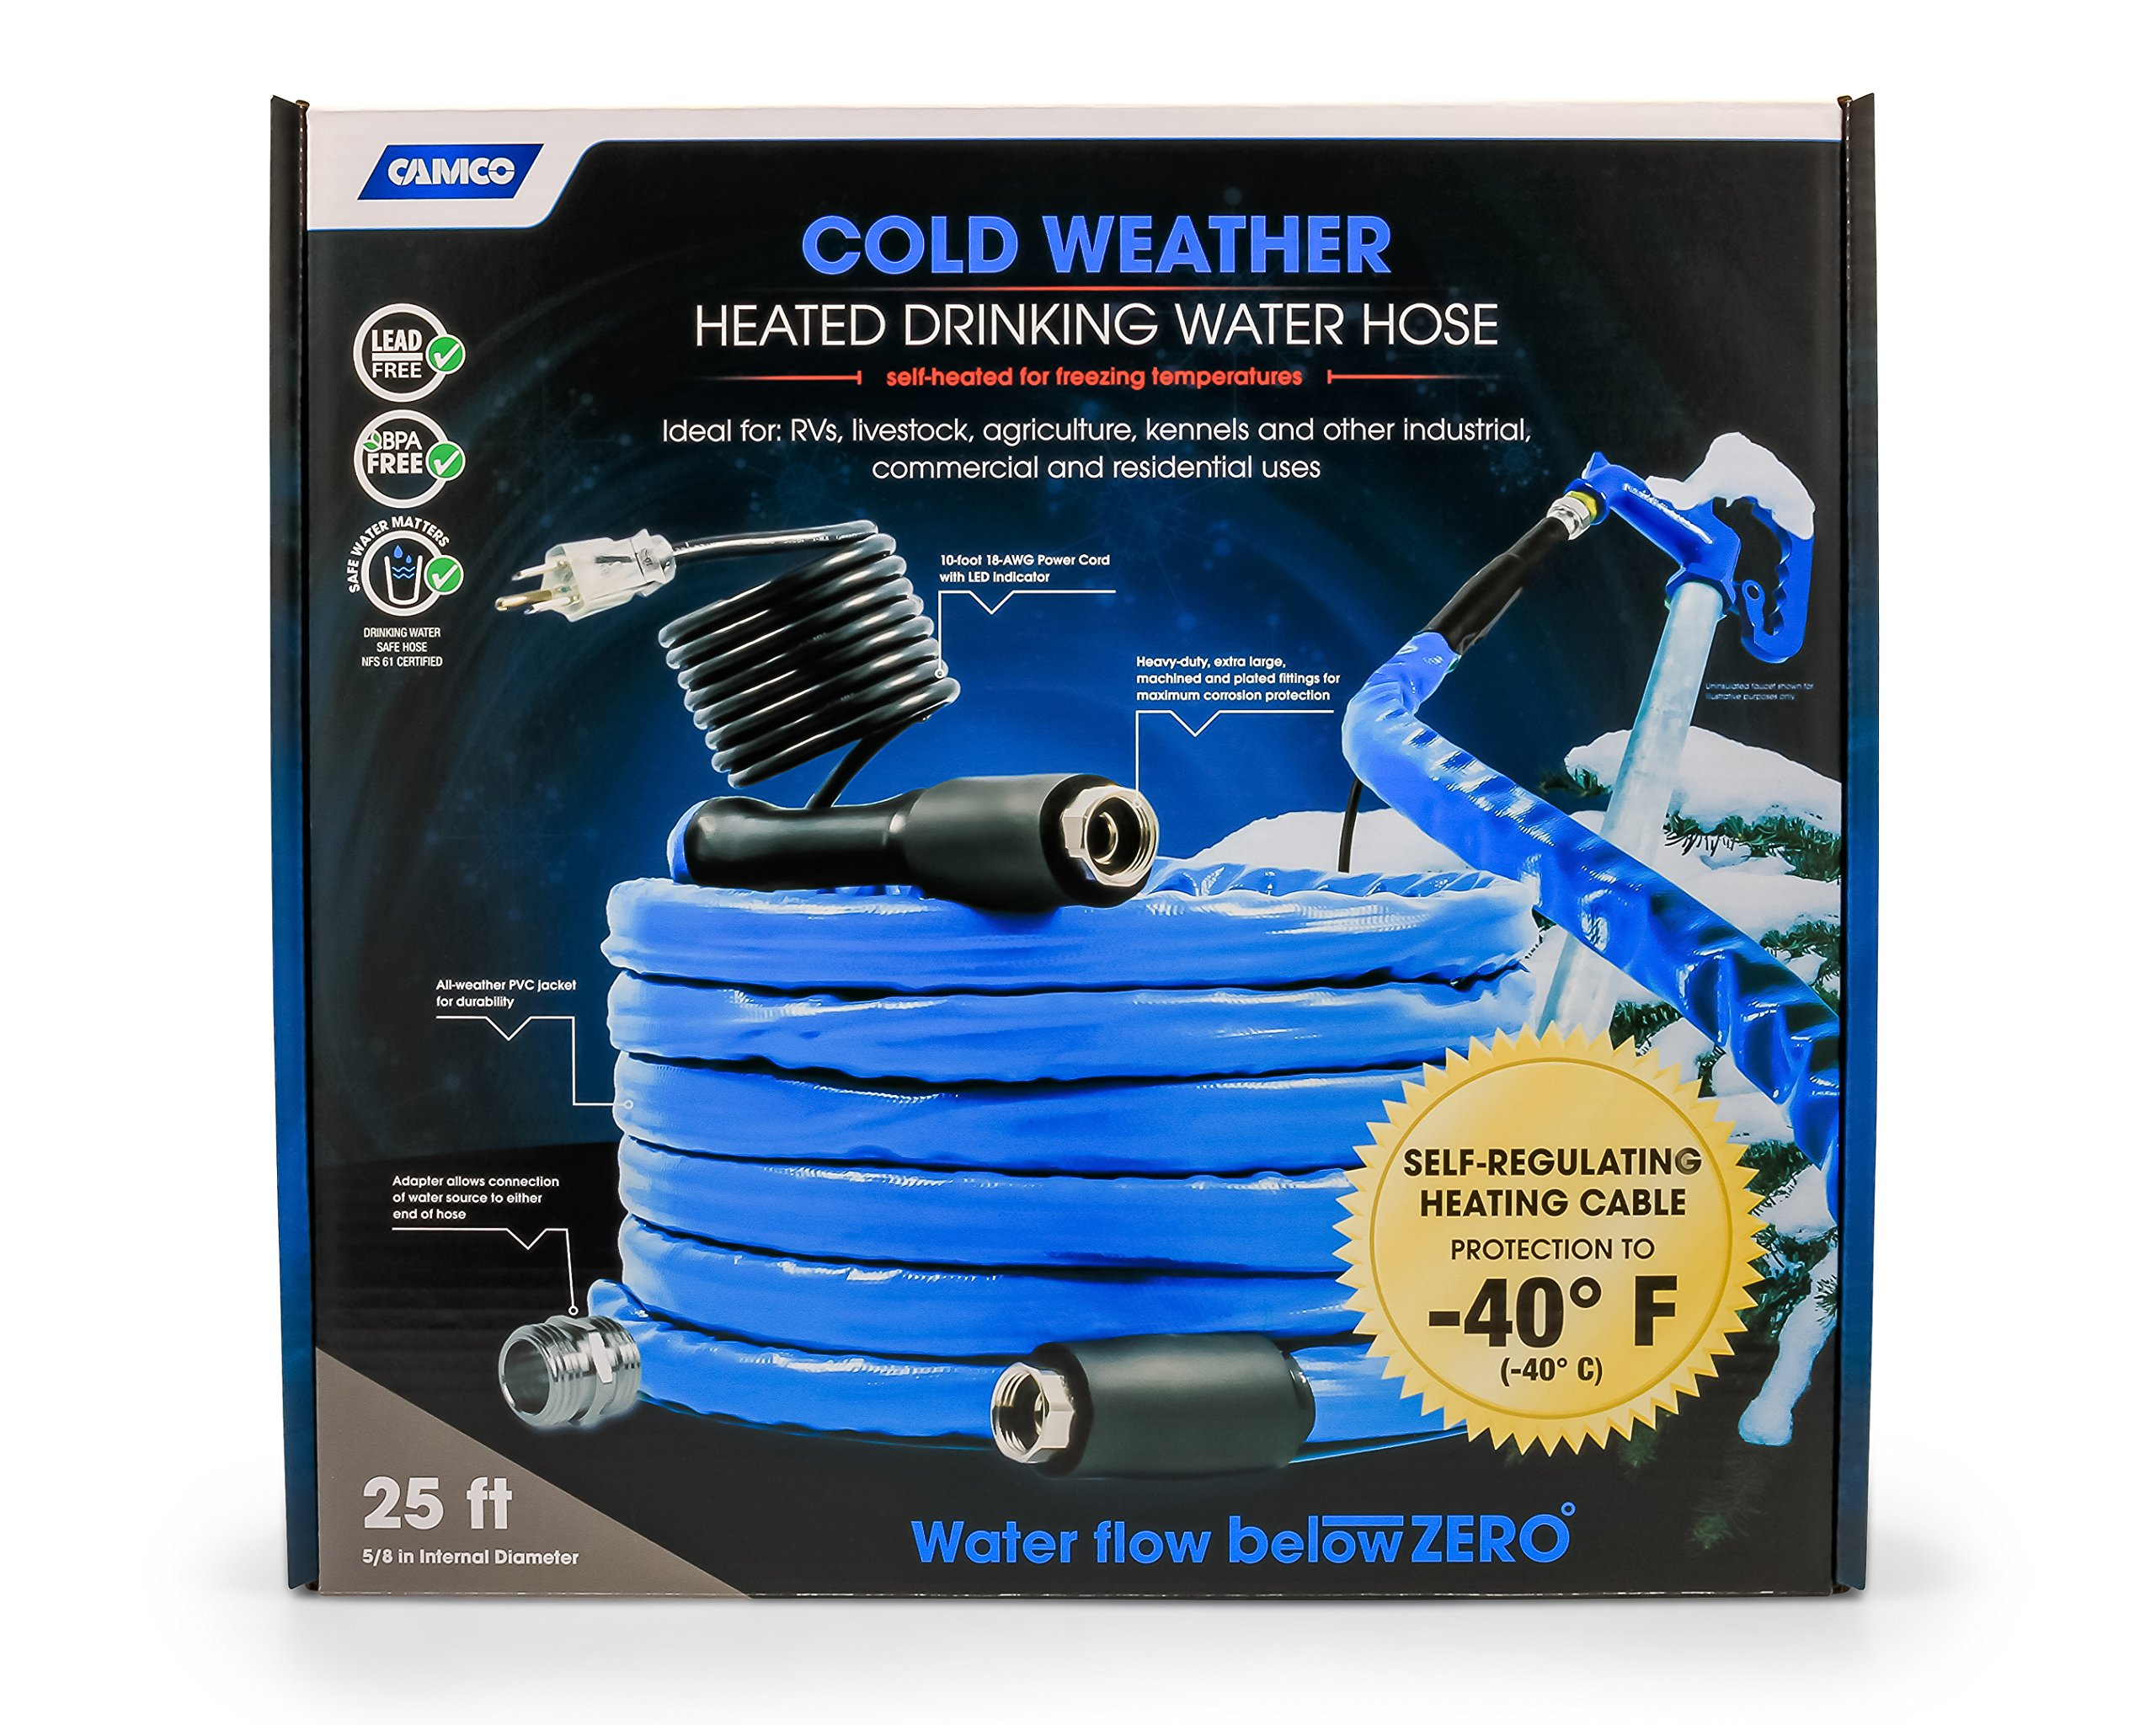 Camco 25ft Cold Weather Heated Drinking Water Hose Can Withstand Temperatures Down to -40°F/C- Lead and BPA Free, Reinforced for Maximum Kink Resistance  5/8'' Inner Diameter (22923)